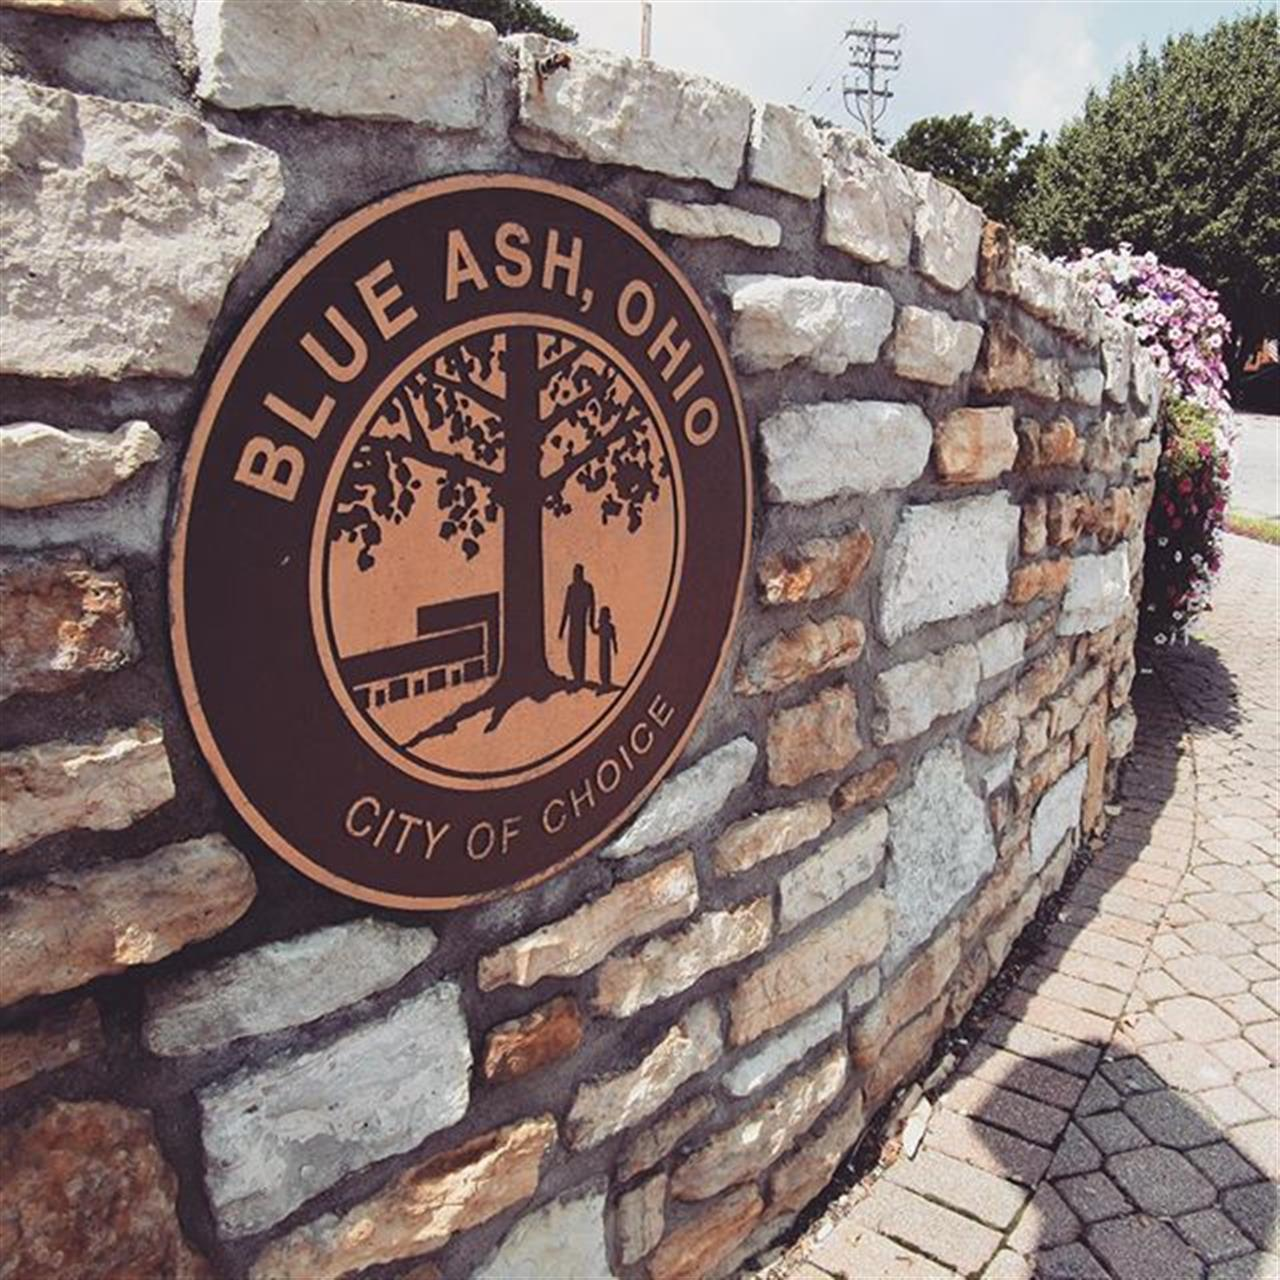 With Red, White & Blue Ash coming up, we couldn't resist spotlighting Blue Ash for this month's Instagram neighborhood feature. Did you know Blue Ash was incorporated as a village in 1955 and as a city in 1961? #homewithsibcycline #sibcycline #blueash #leadingrelocal